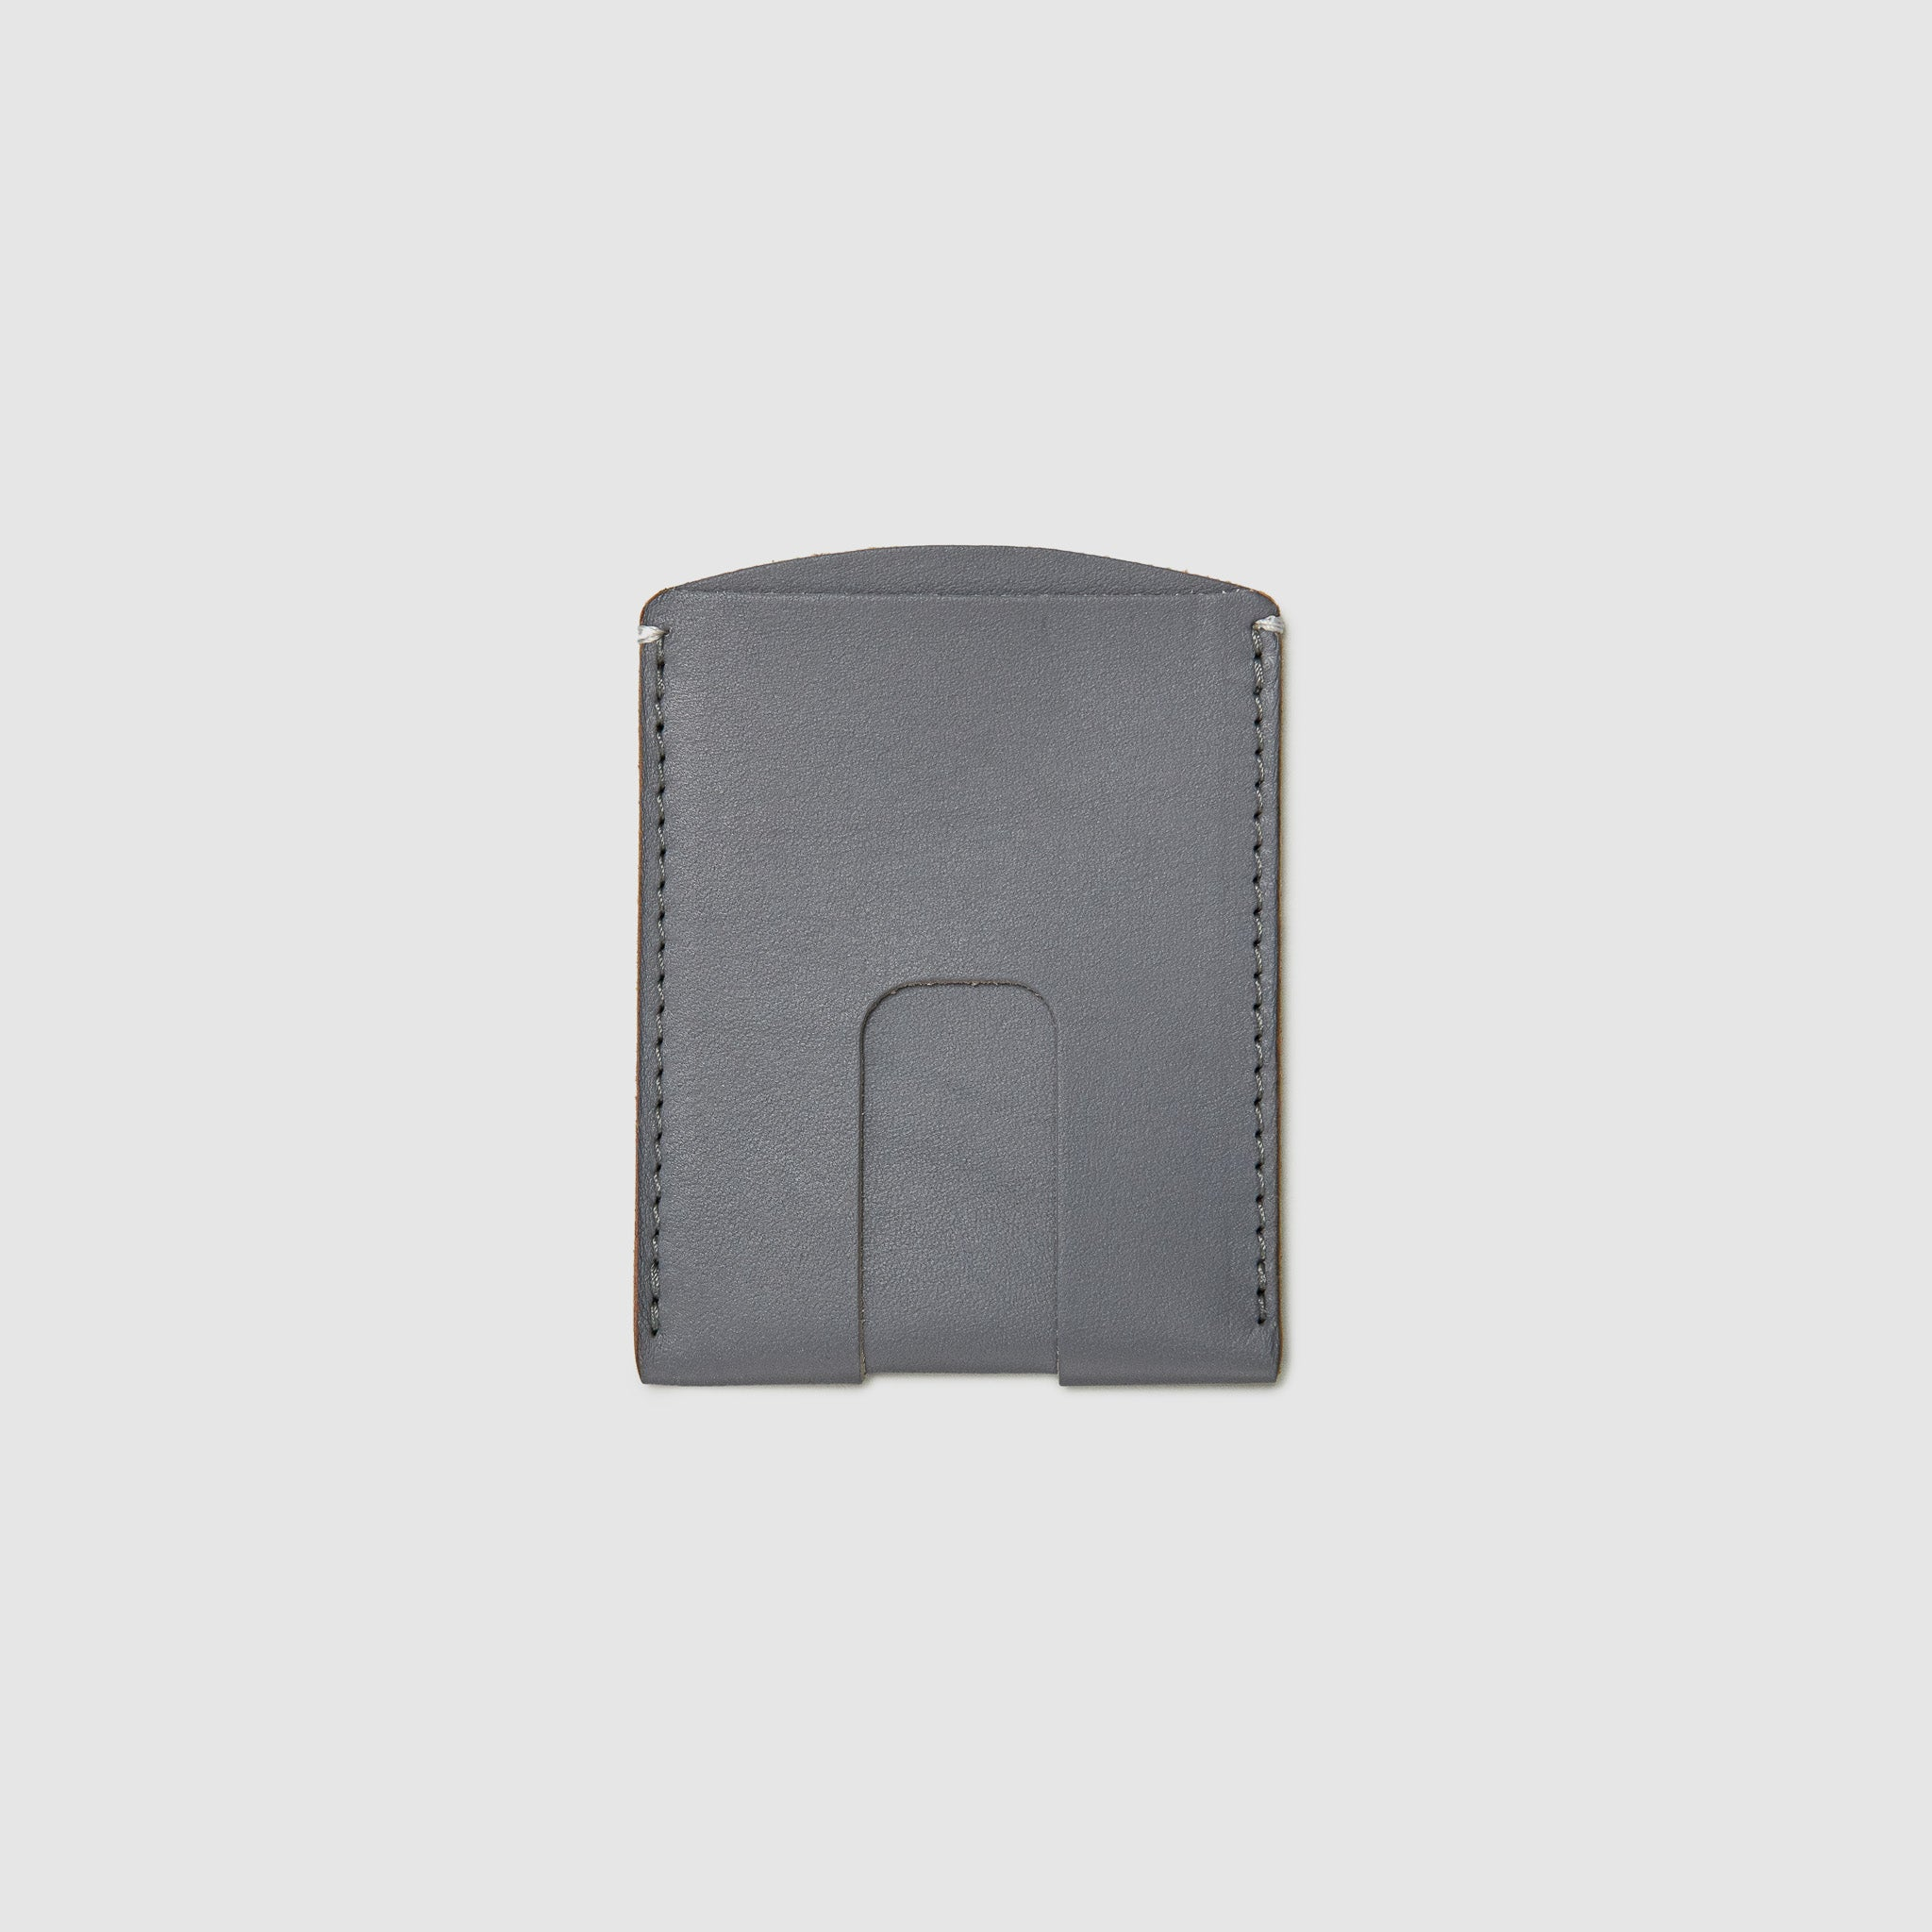 Anson Calder Card Holder Wallet french calfskin leather with cash slot _steel-grey